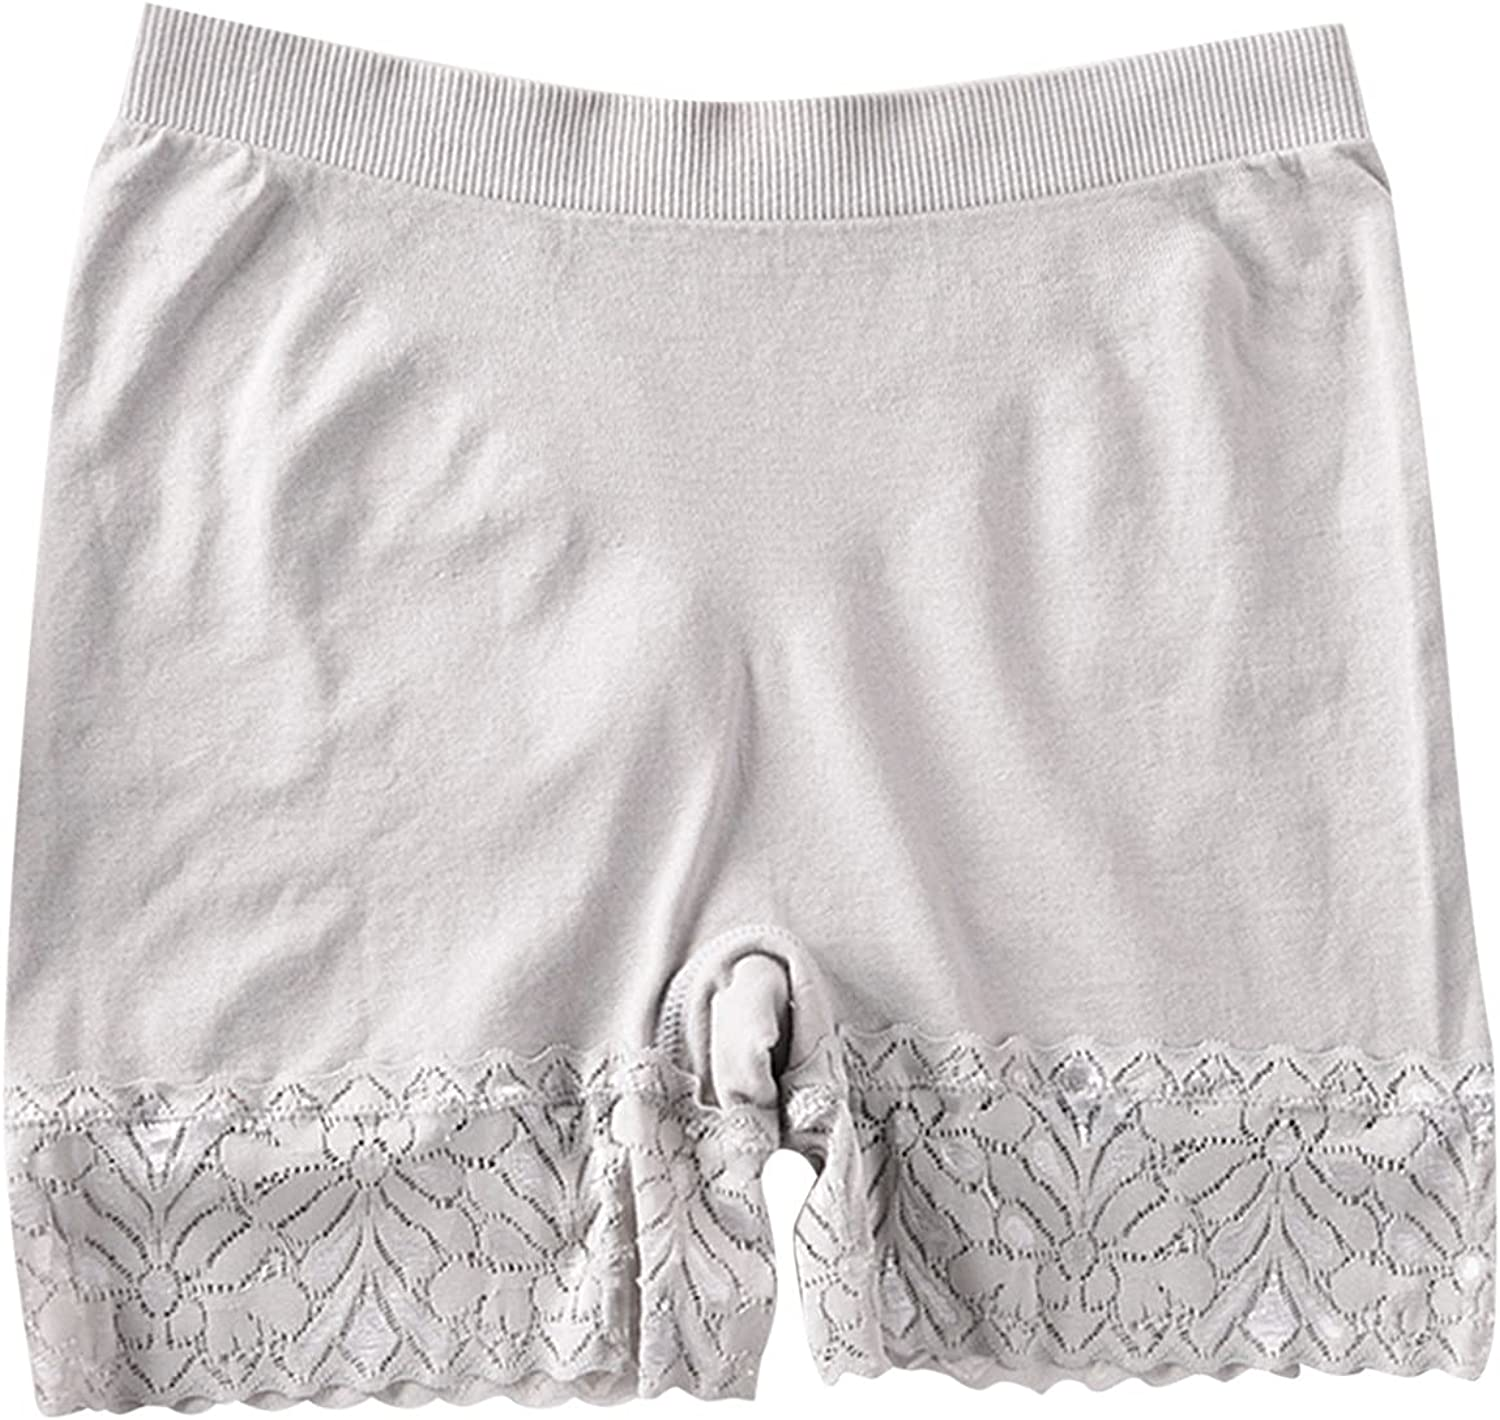 xoxing Women's Lingerie Midwaist Boxer Briefs Lifting Body Safety Underpants Underwear